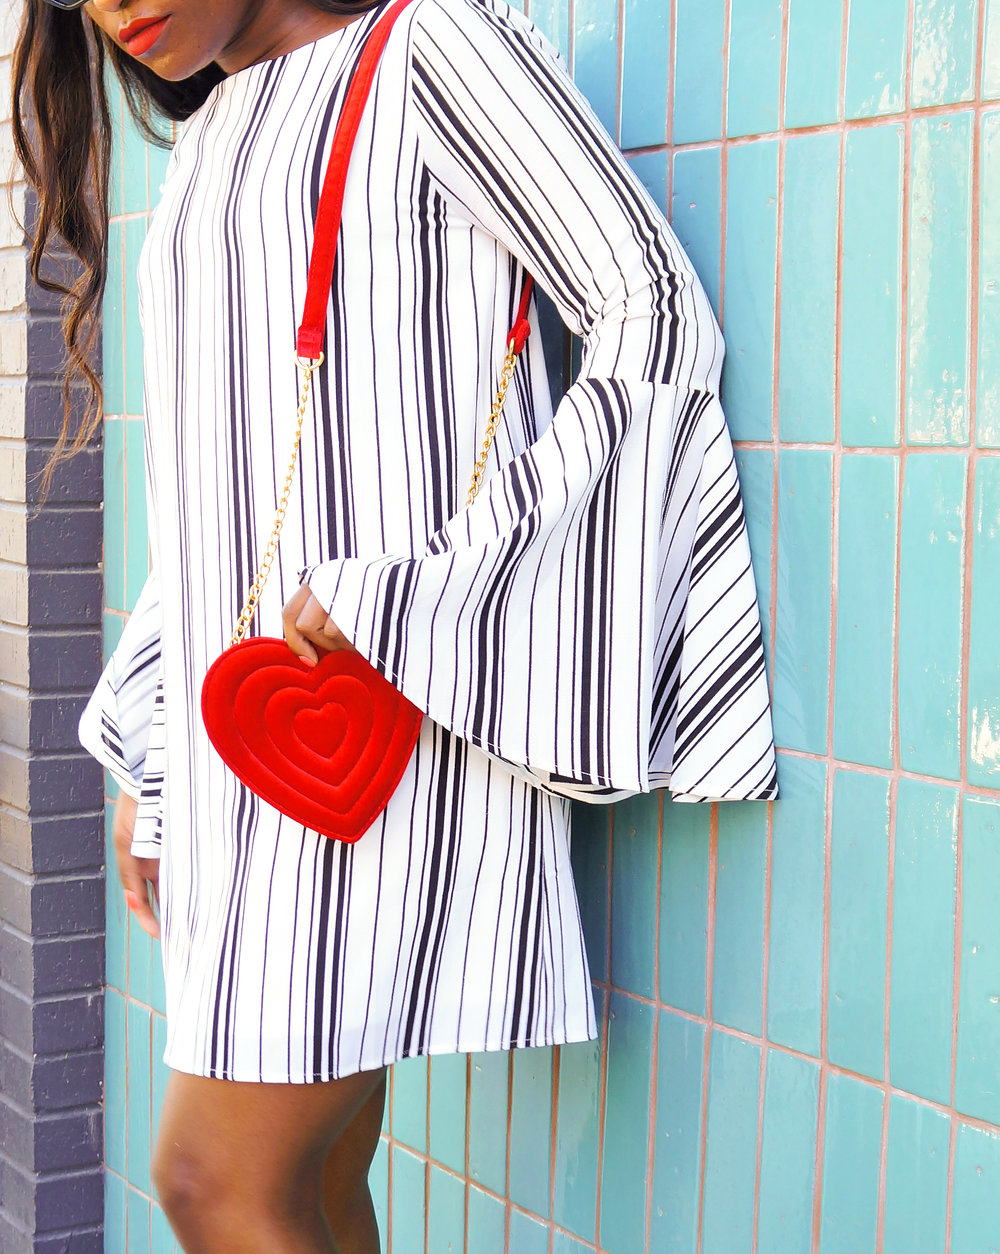 How cute is this heart bag from Euro brand  Monki  tho?!